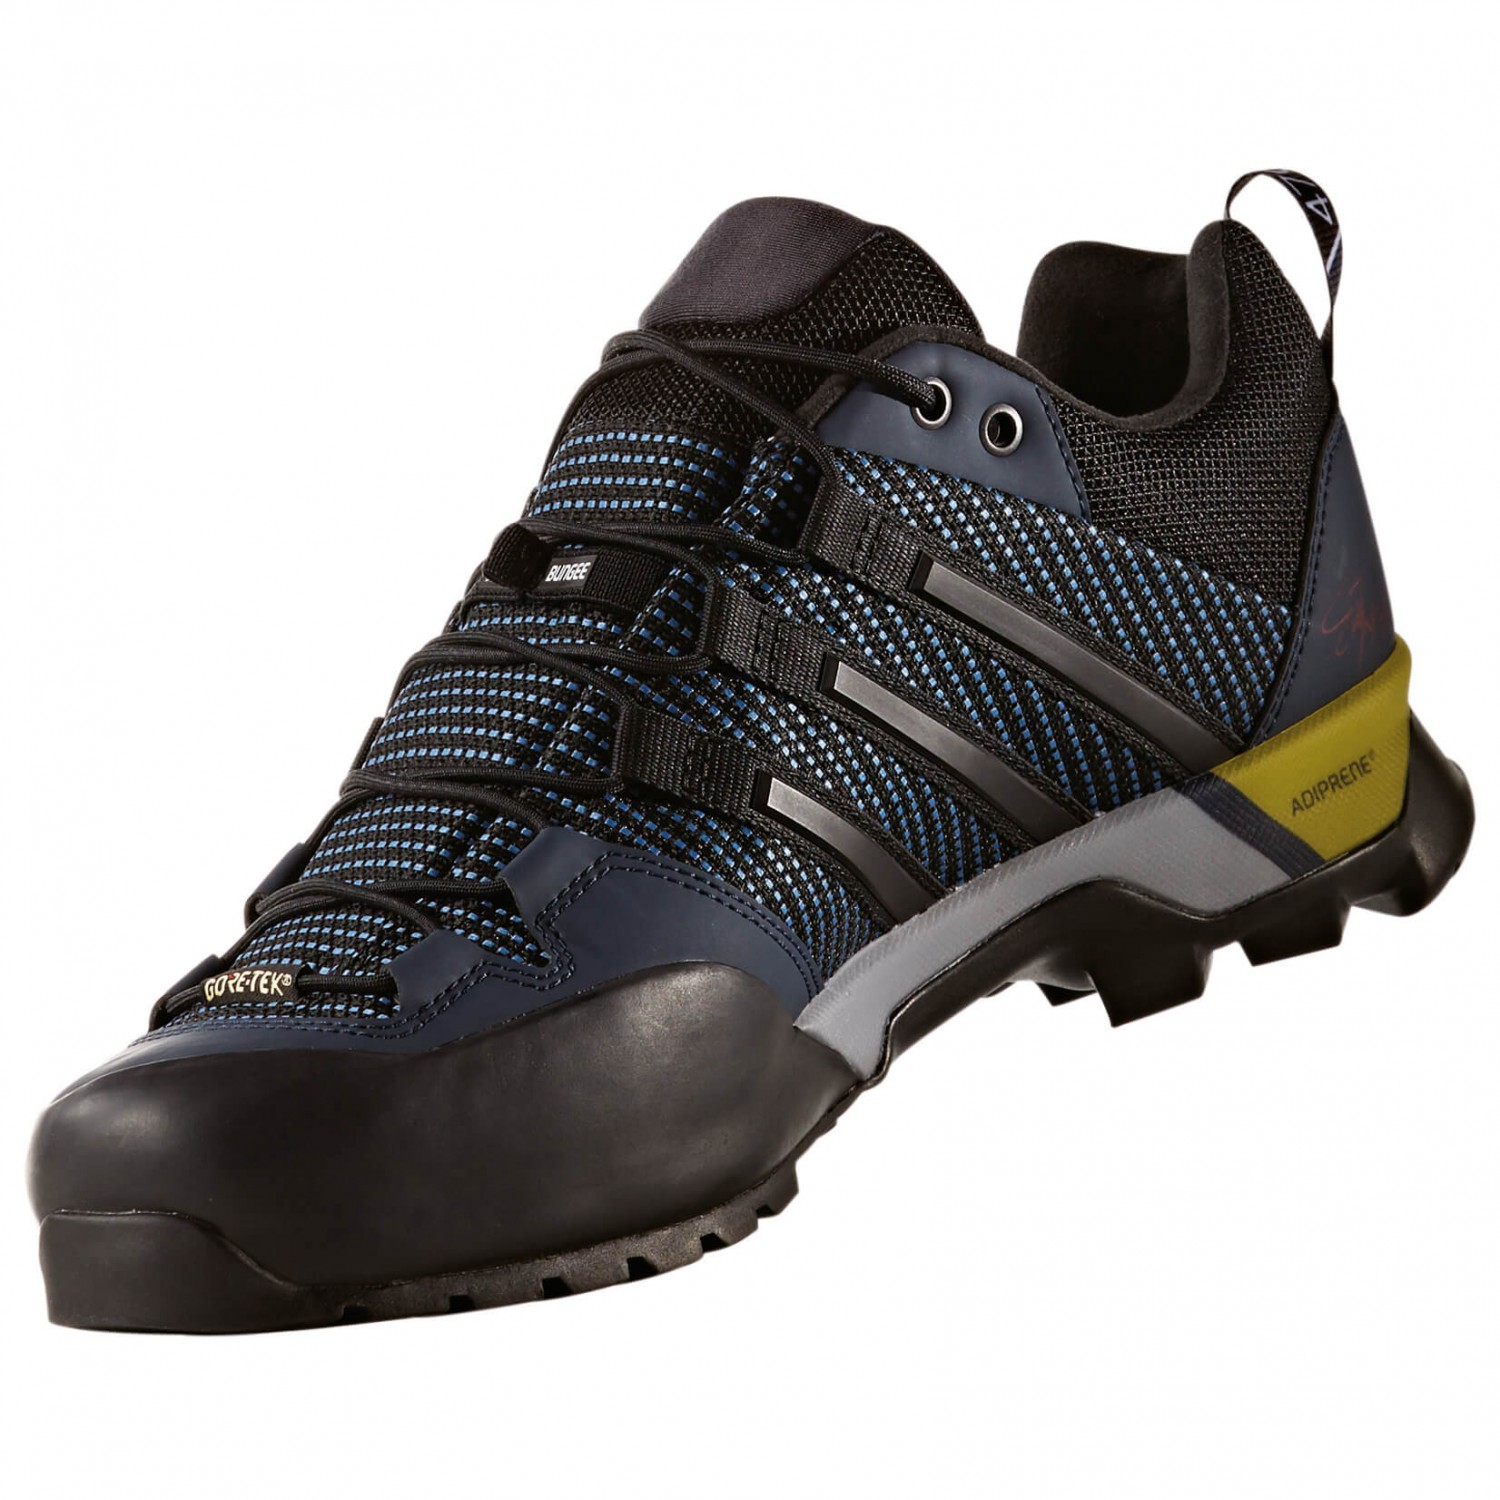 Gtx Shoes Men